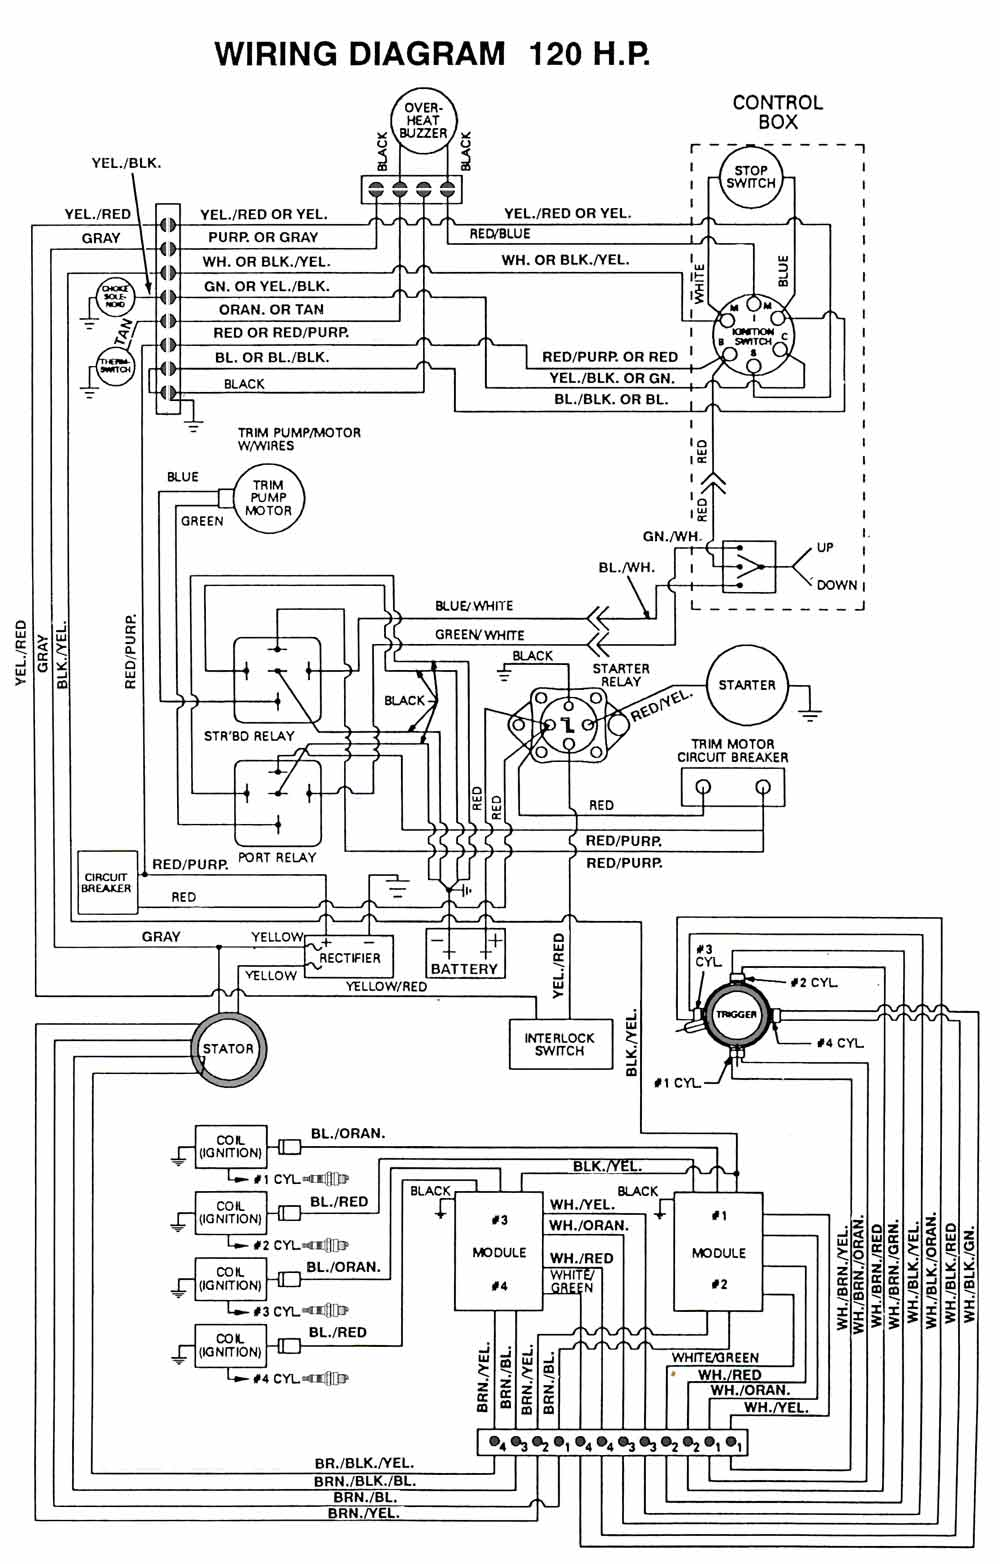 Mercruiser 120 Wiring Diagram Circuit Schema Mercury Power Trim Engine Starting Know About Tilt 75